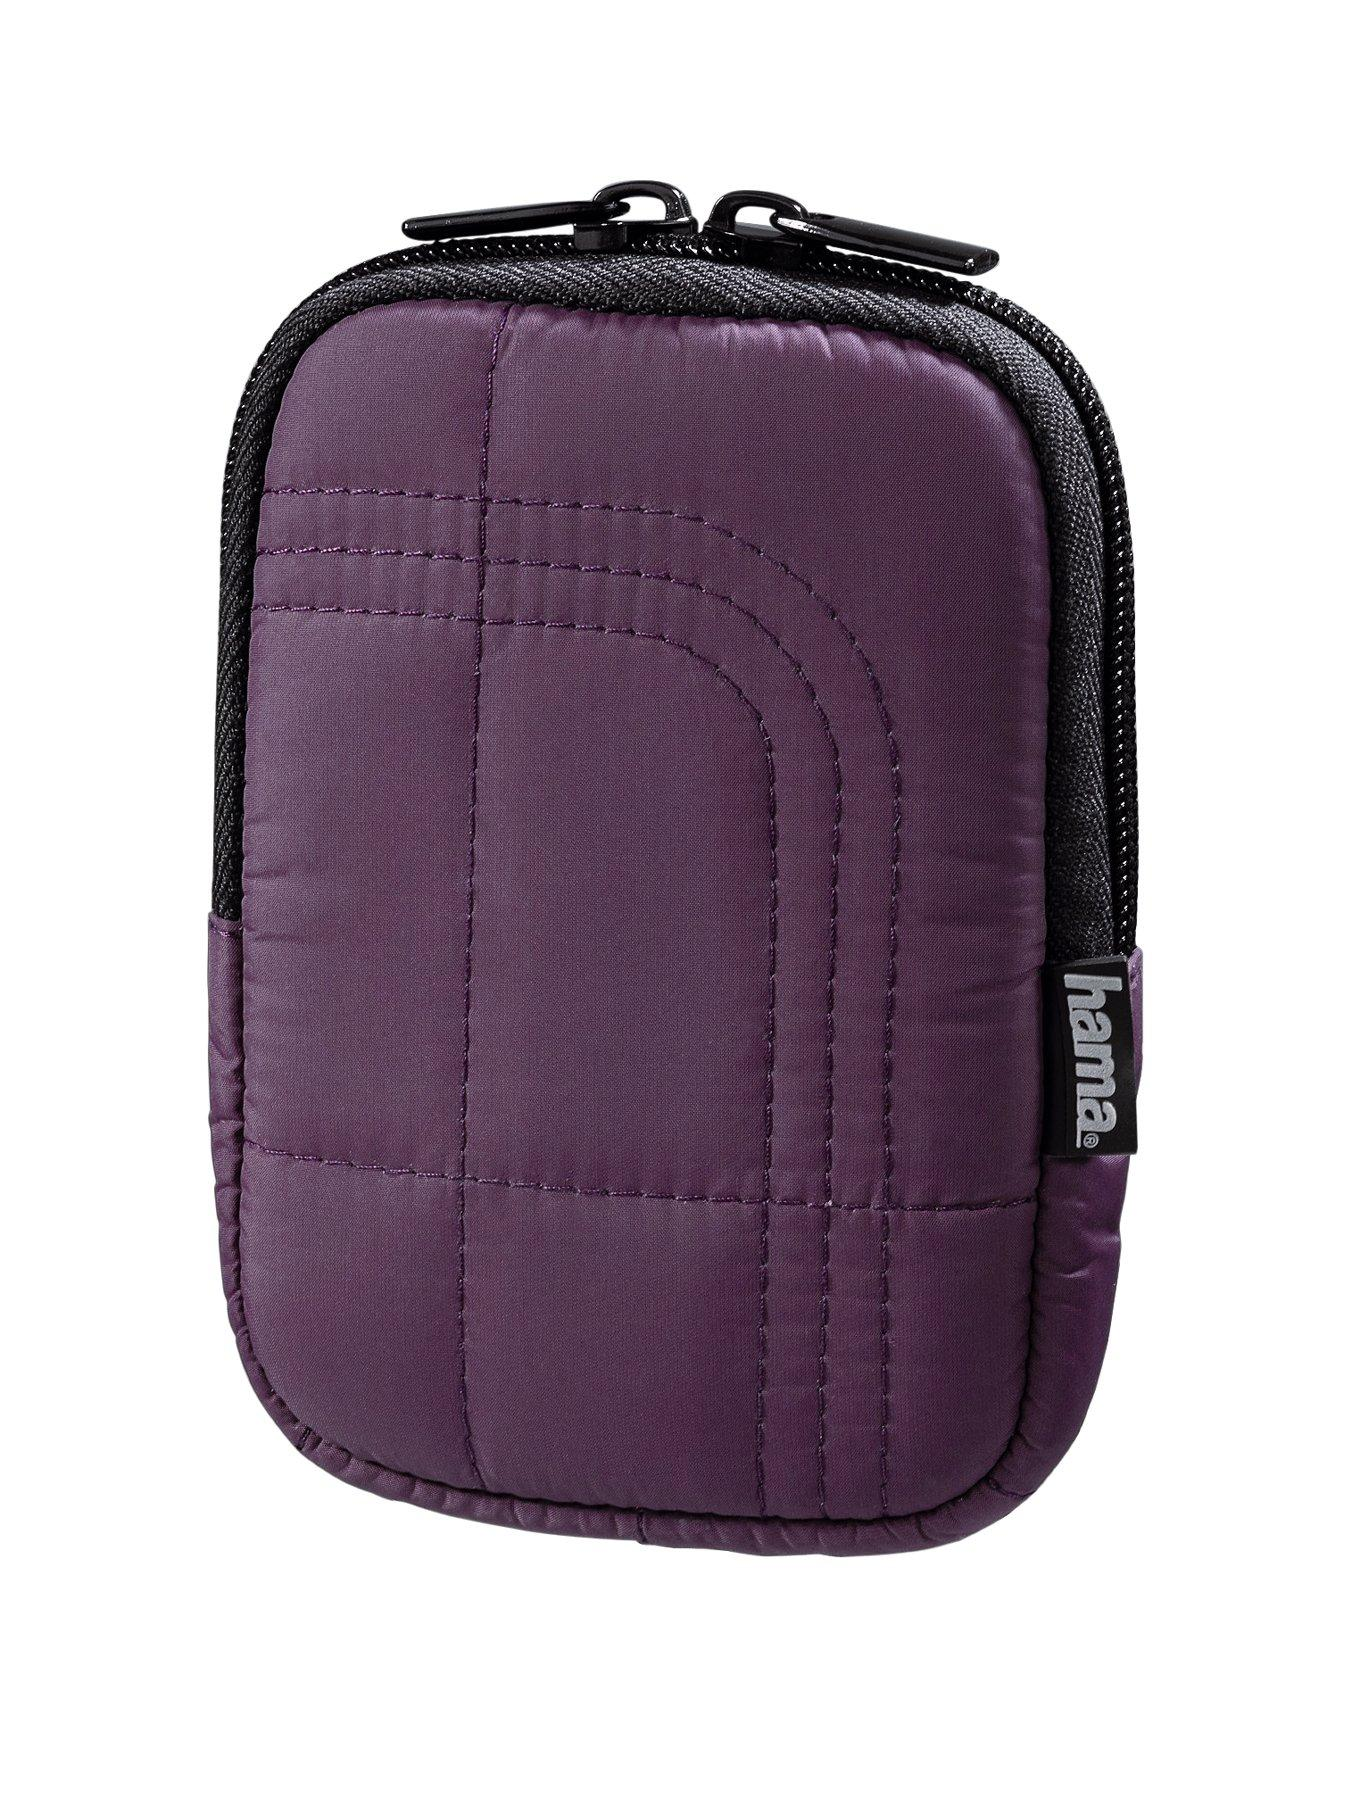 HAMA Fancy Memory 50C Camera Bag Purple at Very, from Littlewoods